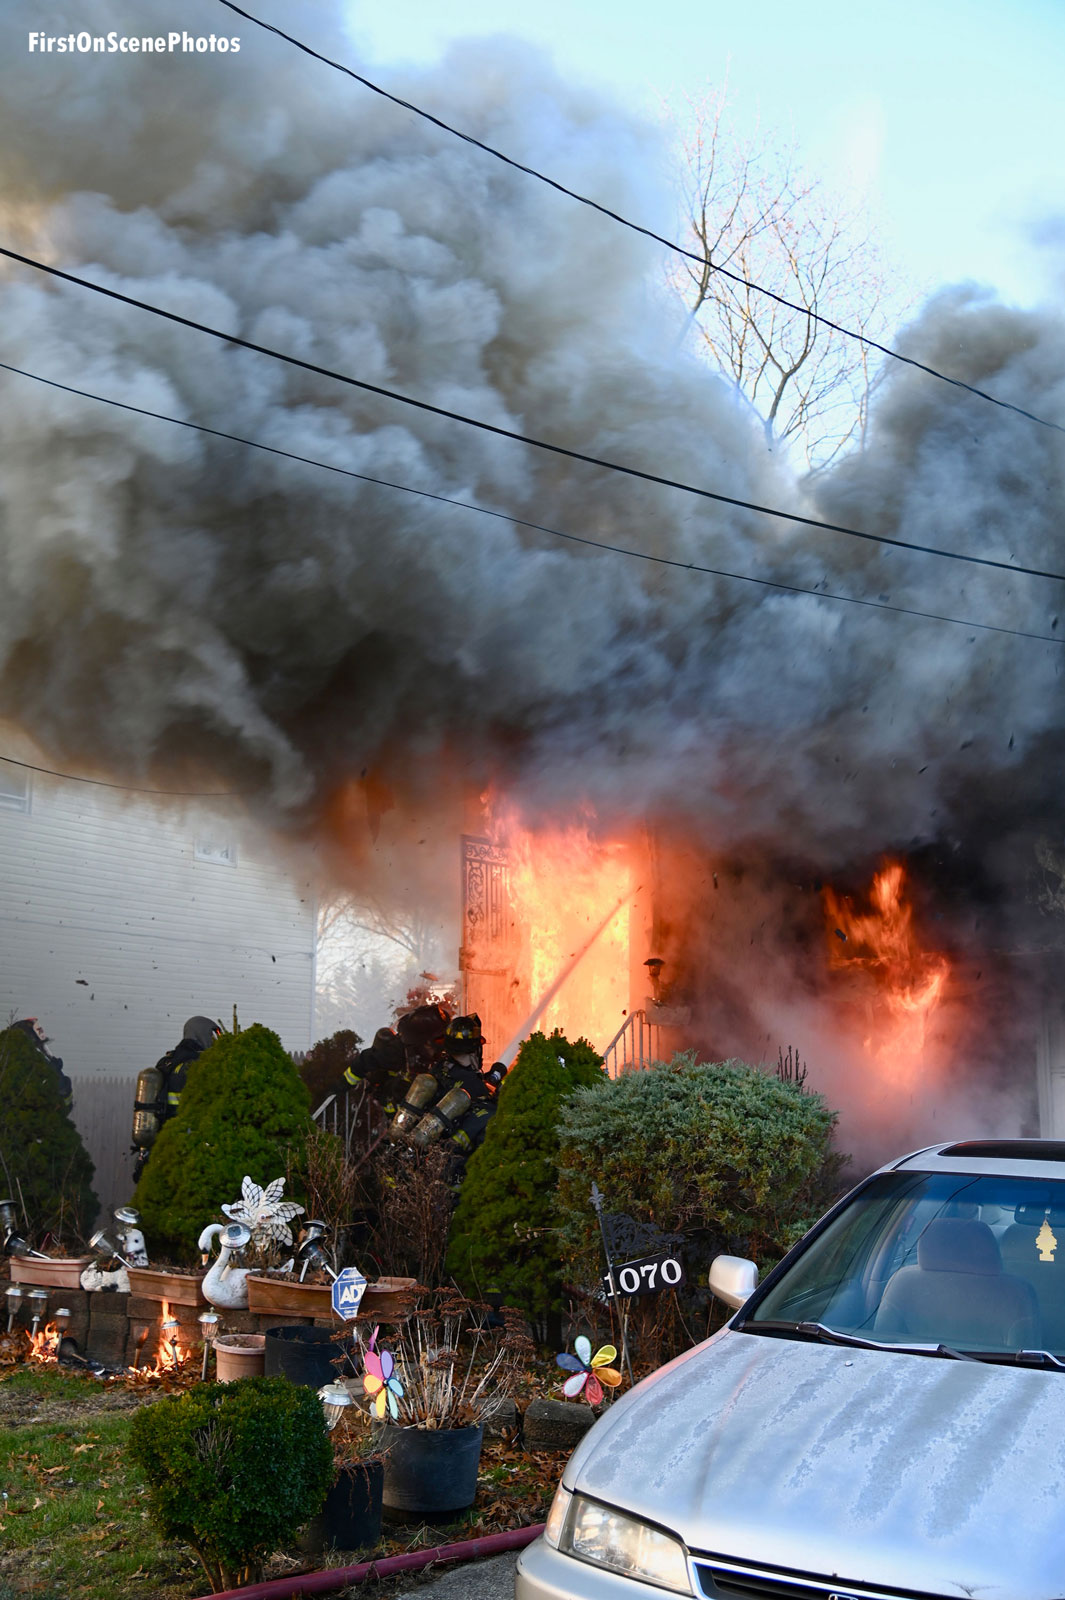 Another view of the flames.